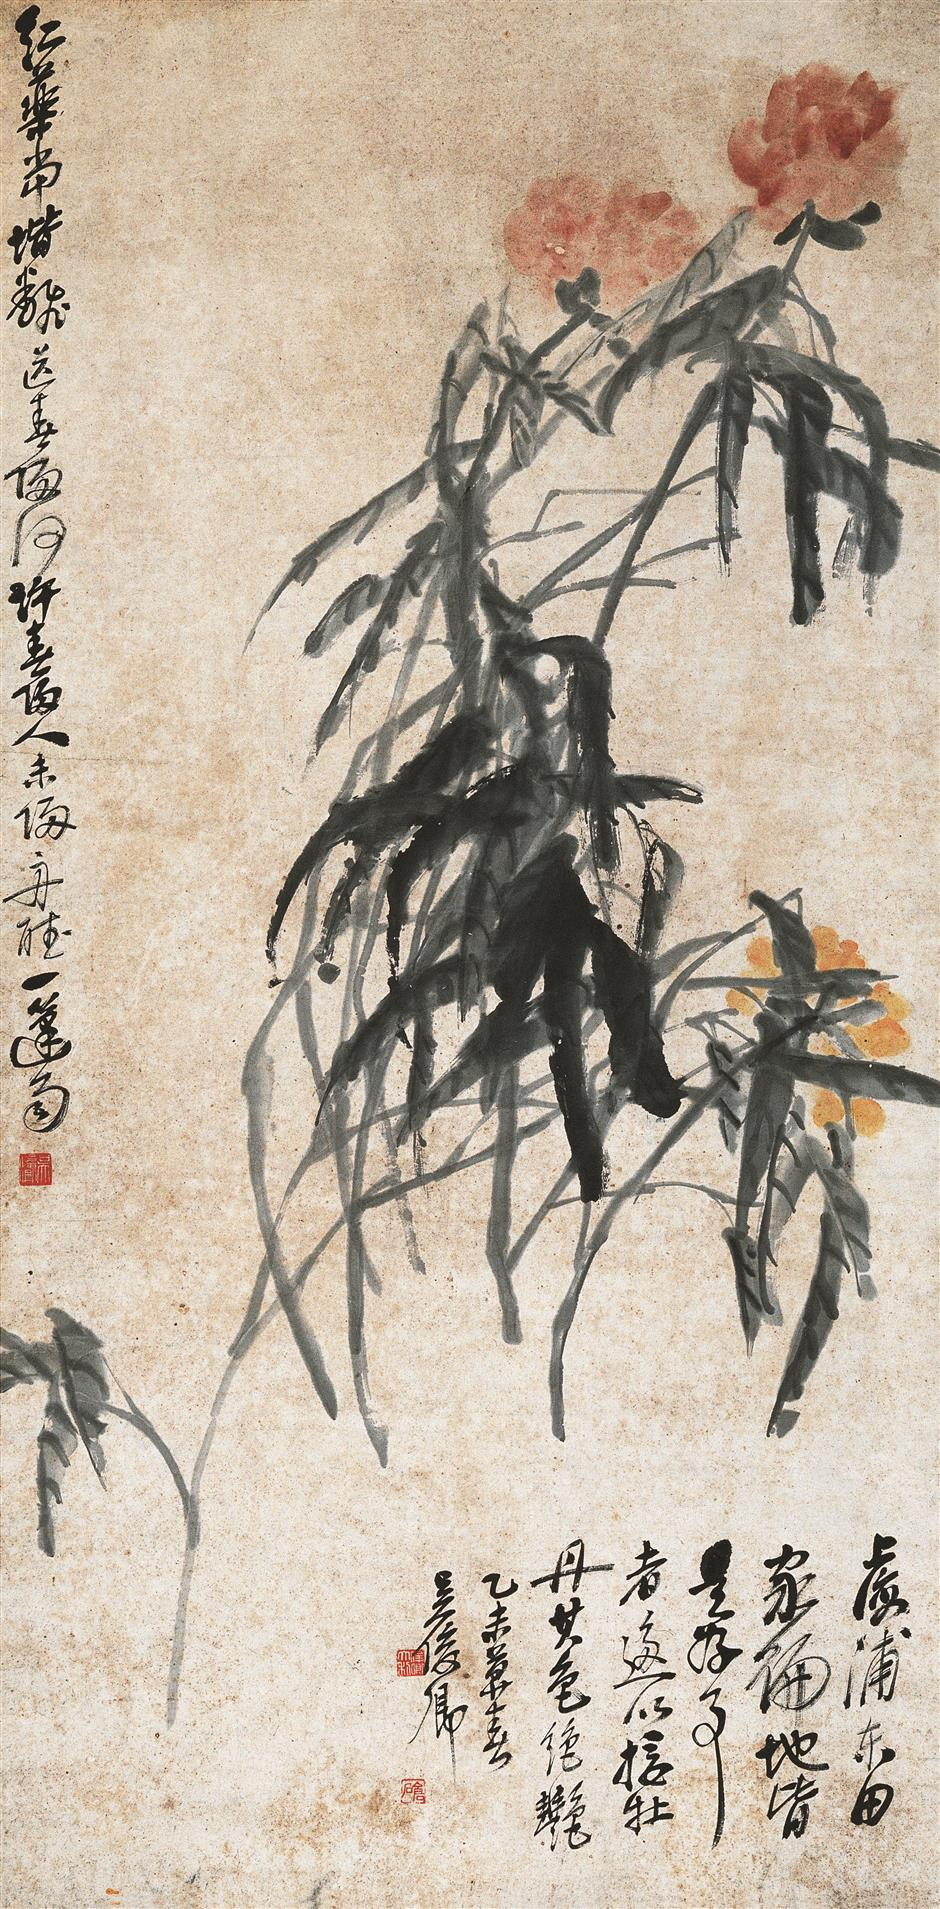 Never before seen works of Wu Changshuo on show